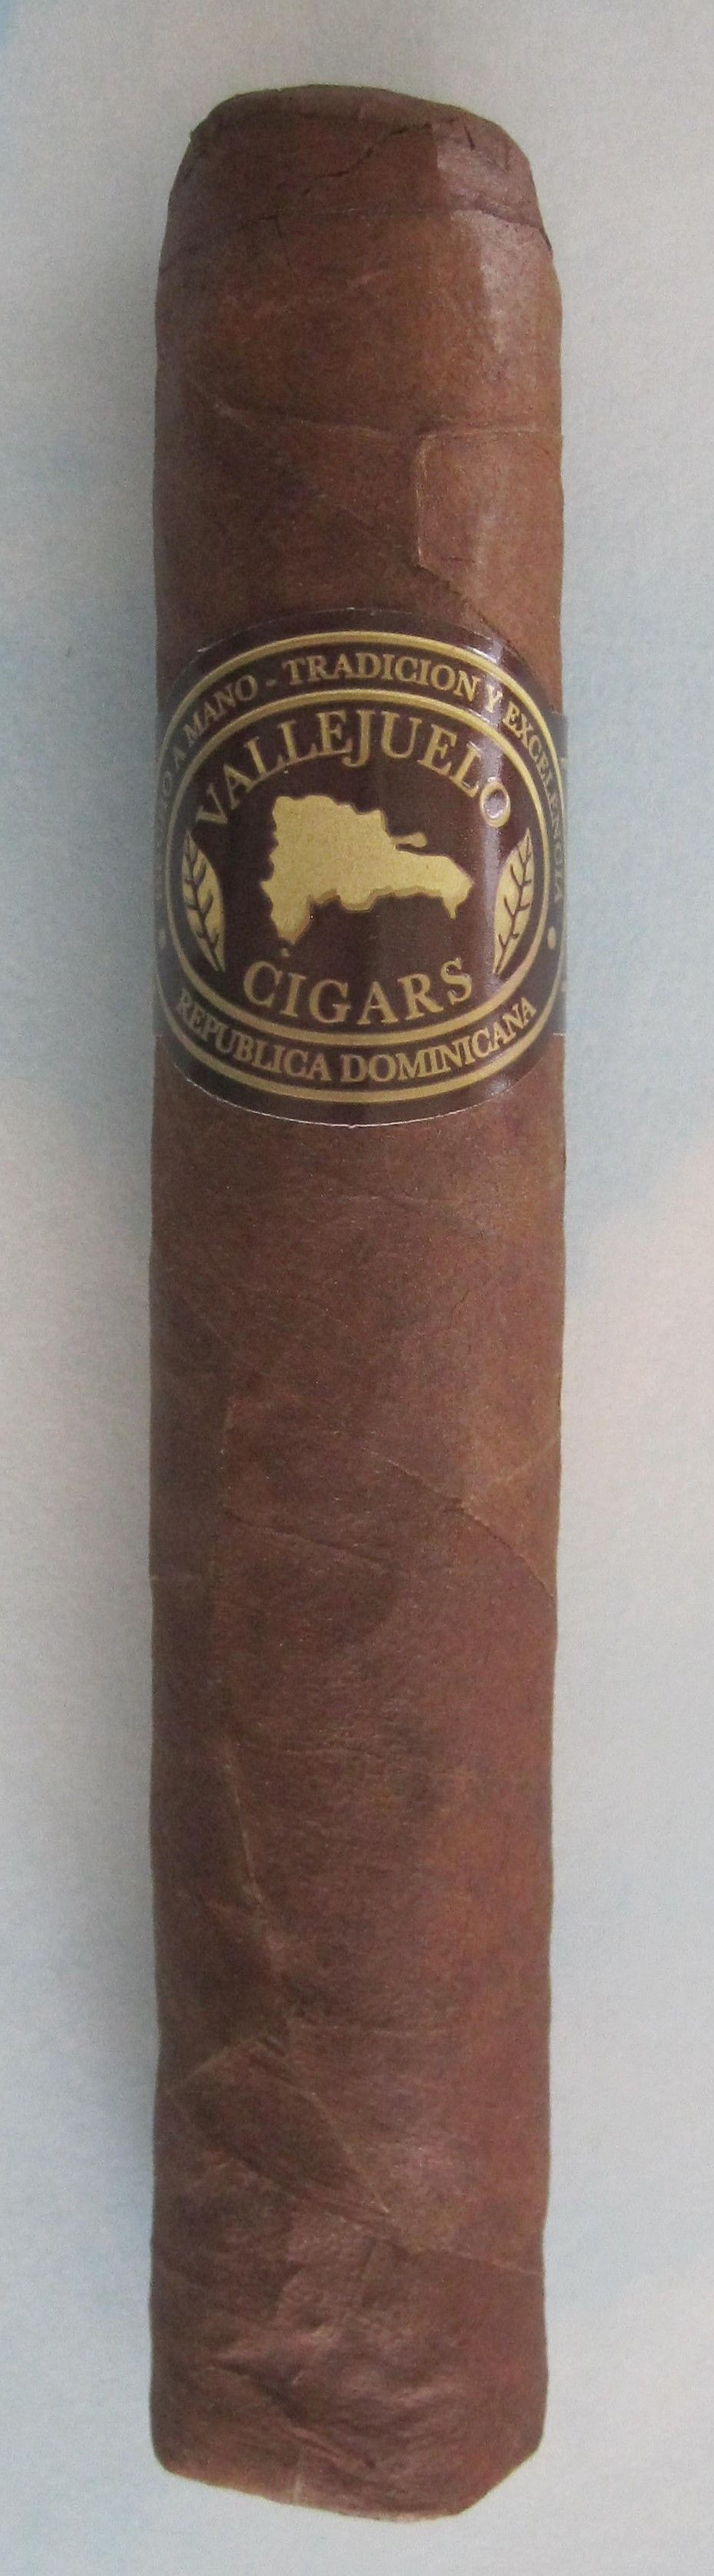 Vallejuelo Cigar